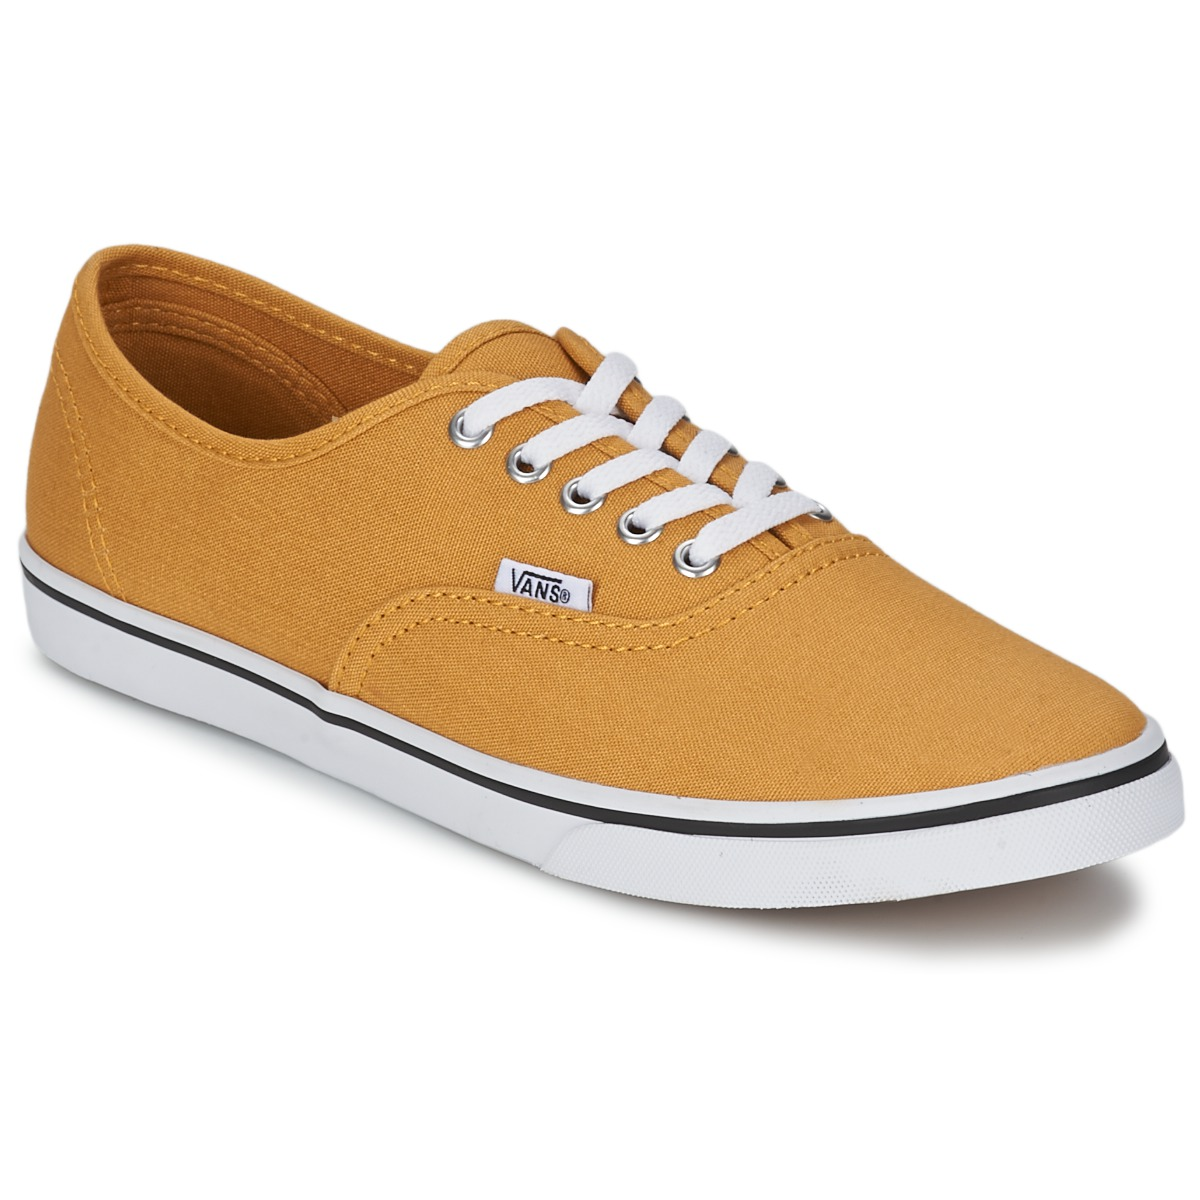 Vans AUTHENTIC LO PRO Mustard / True White